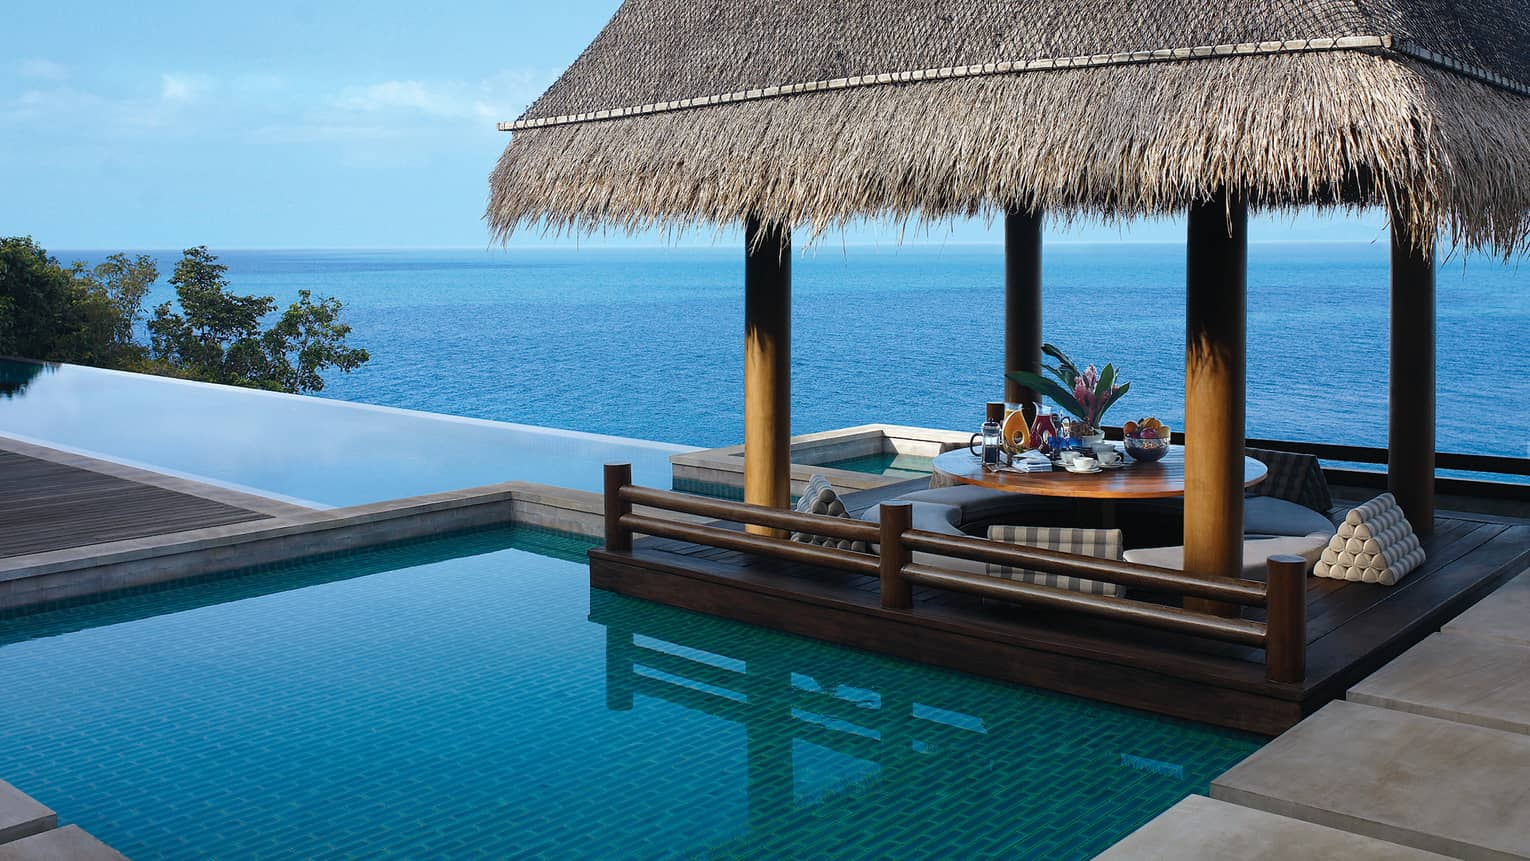 Infinity pool overlooking the Gulf of Thailand with a thatched-roof cabana